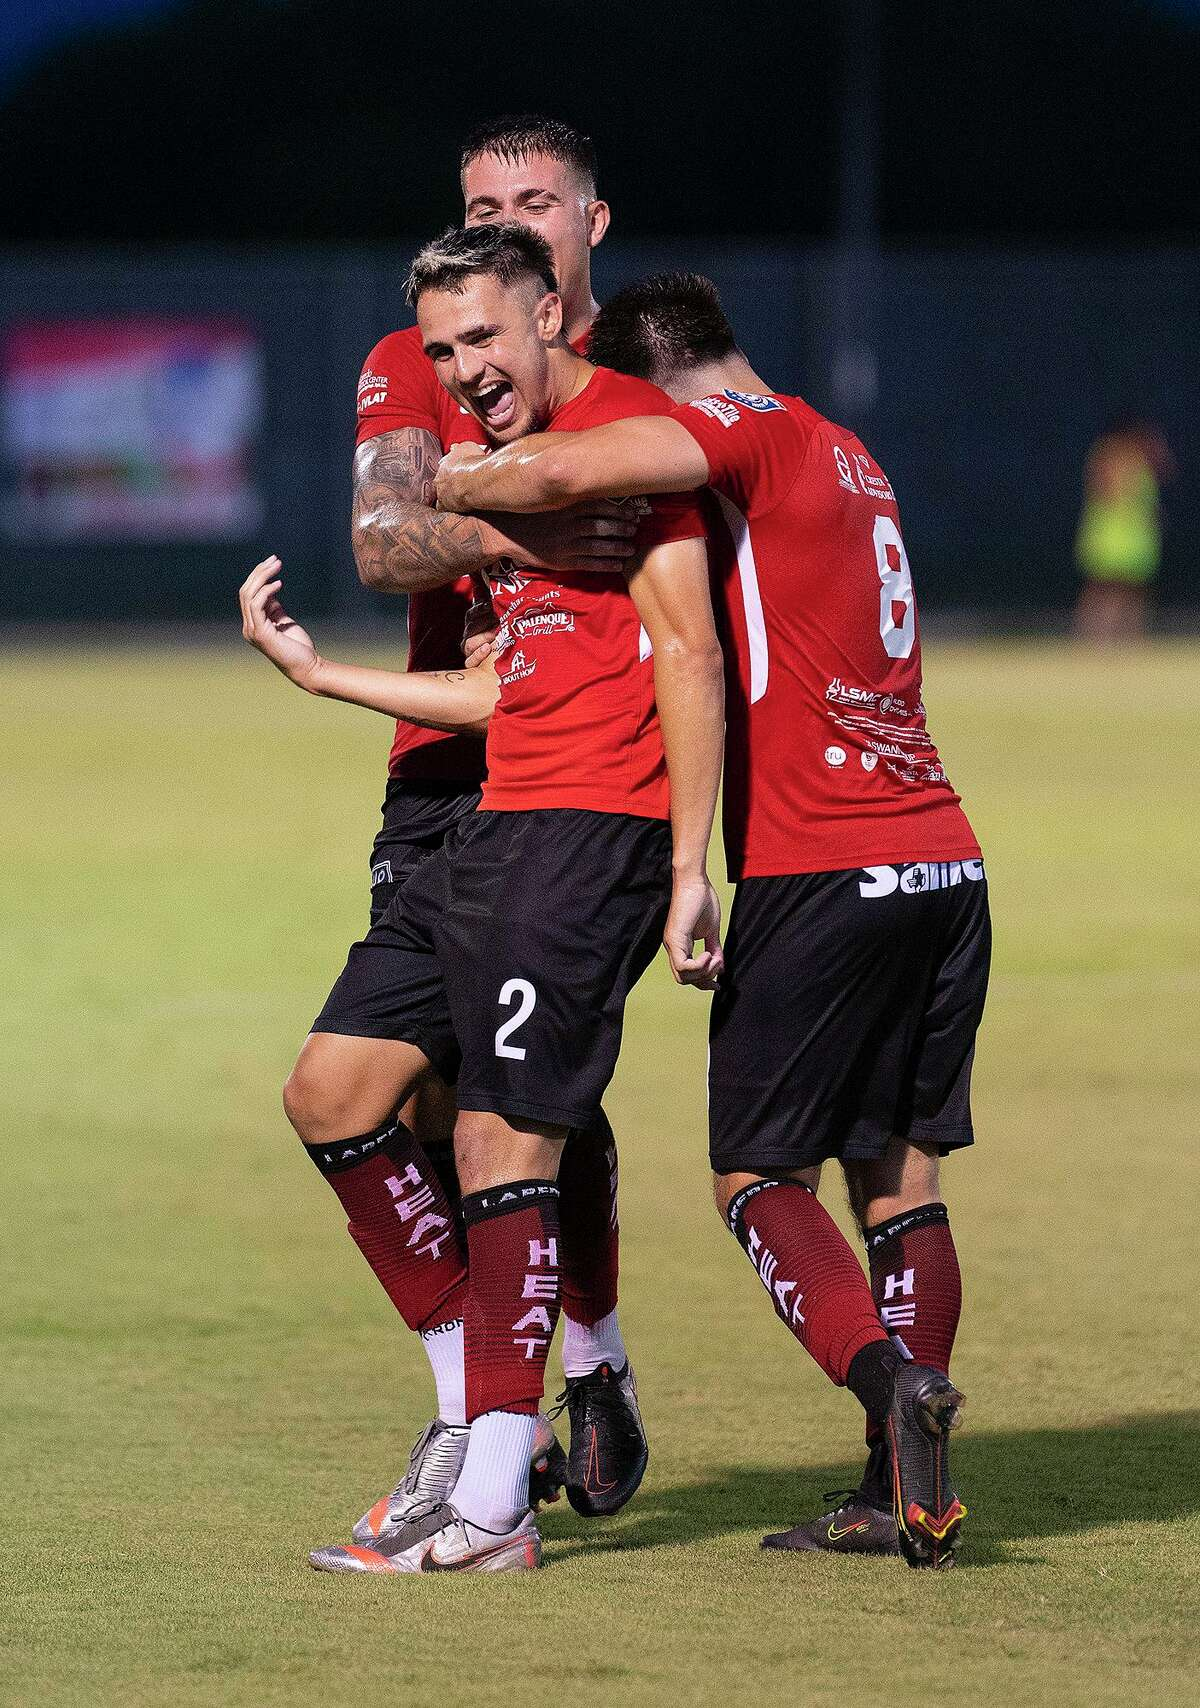 Gabriel Claudio scored the lone goal on June 30 in the Heat's 1-0 victory over Katy 1895 FC at the TAMIU Soccer Complex.